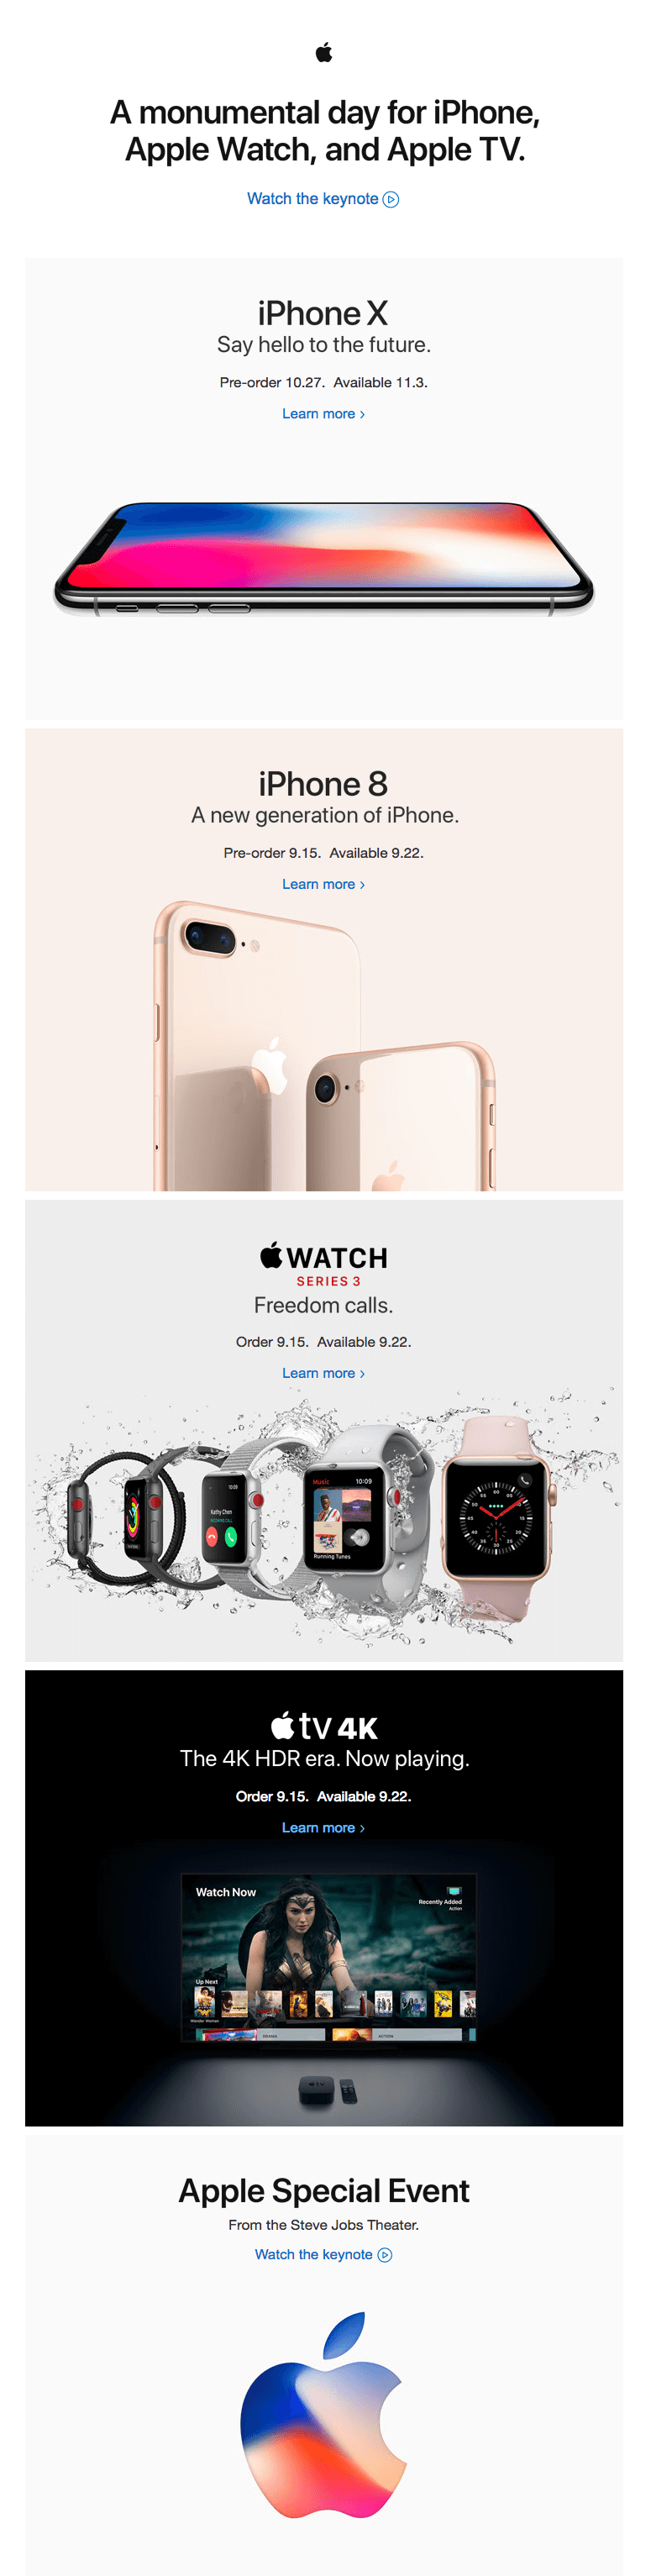 iphone x email